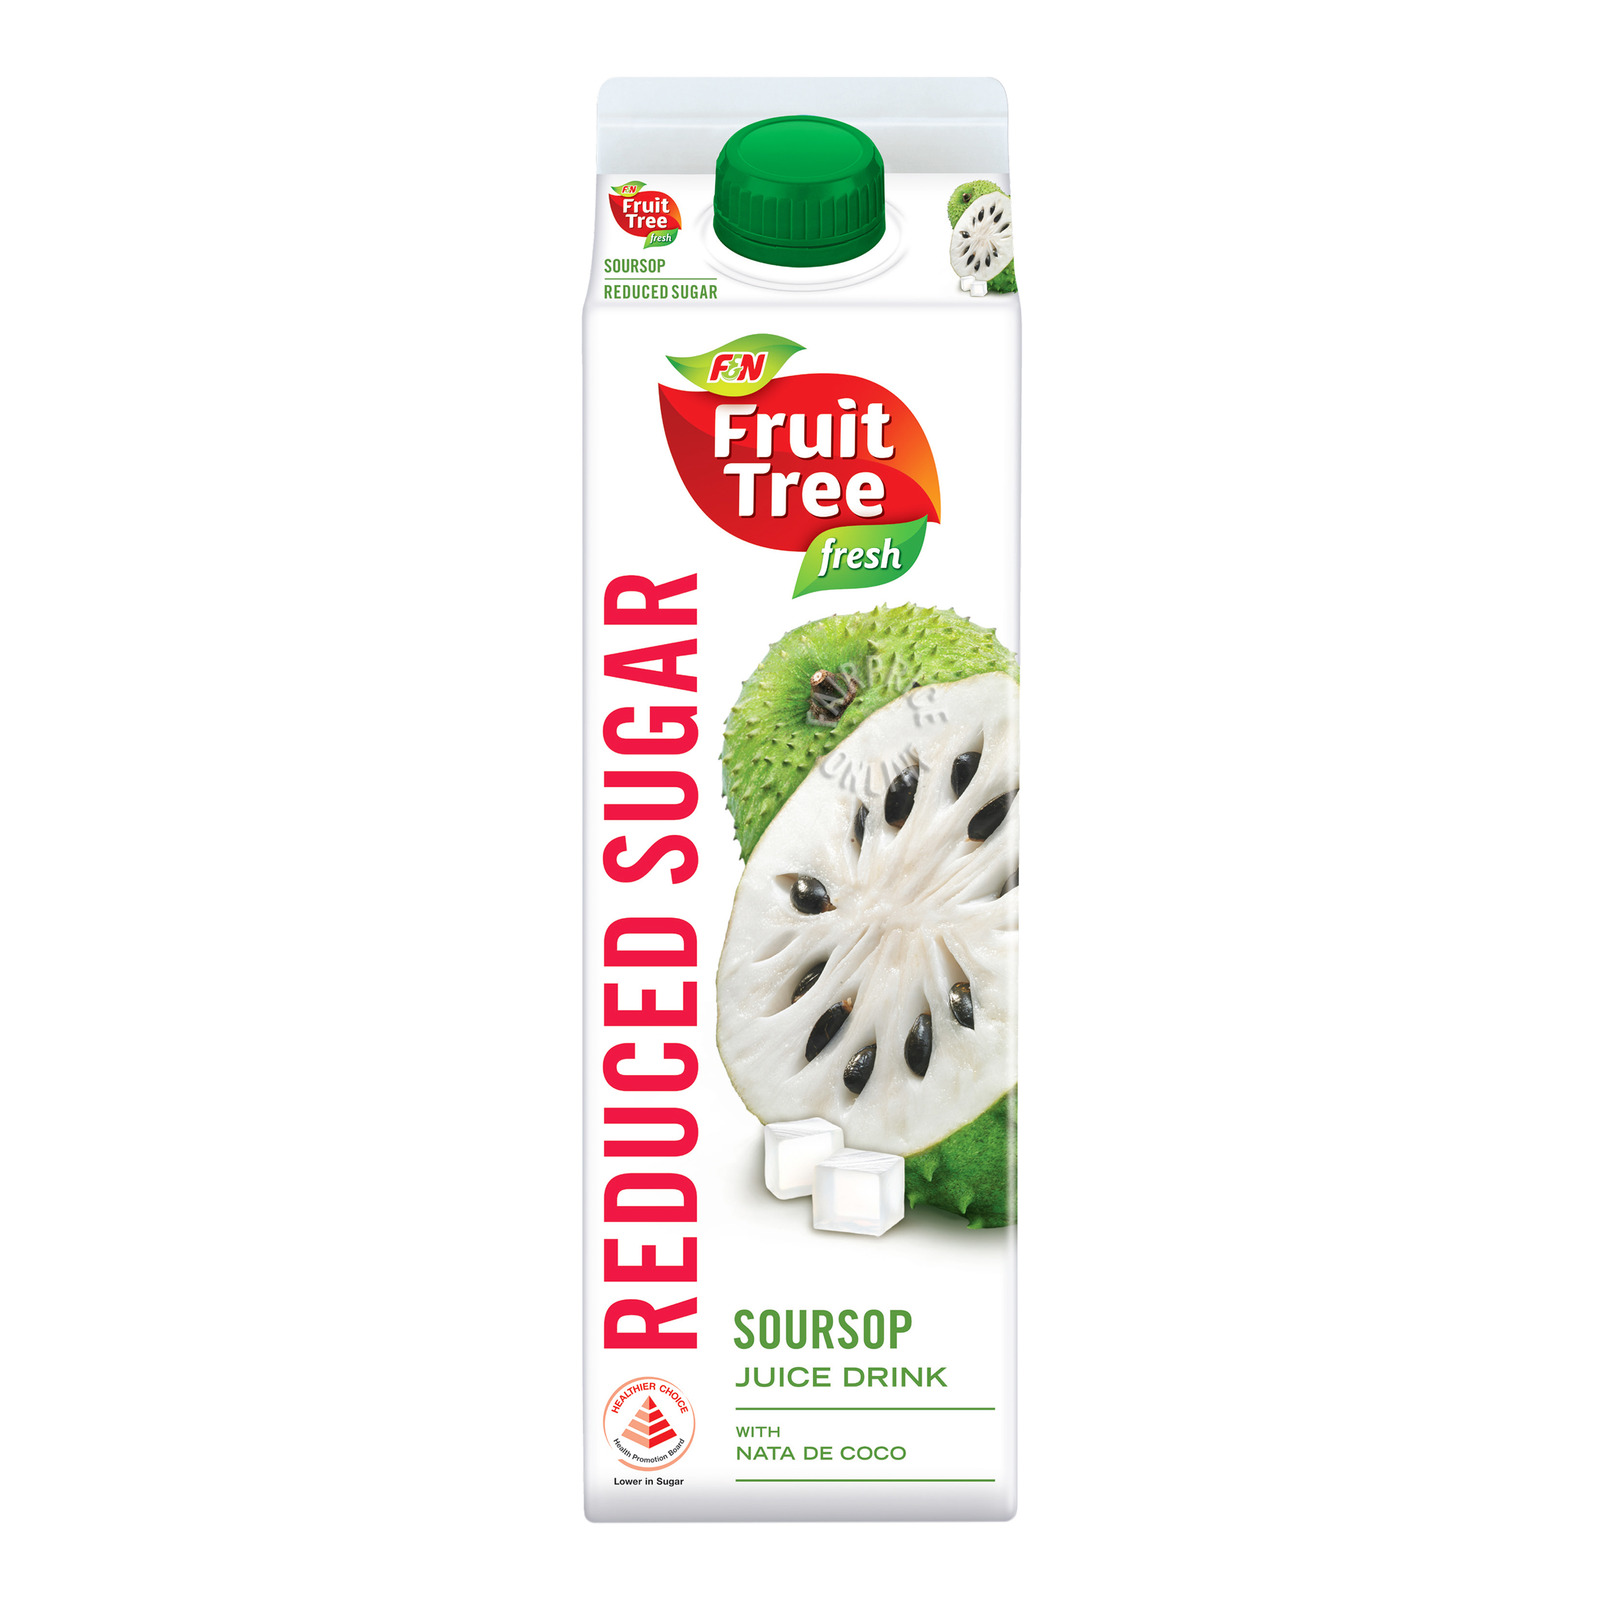 F&N Fruit Tree Fresh Juice - Soursop with Nata de Coco